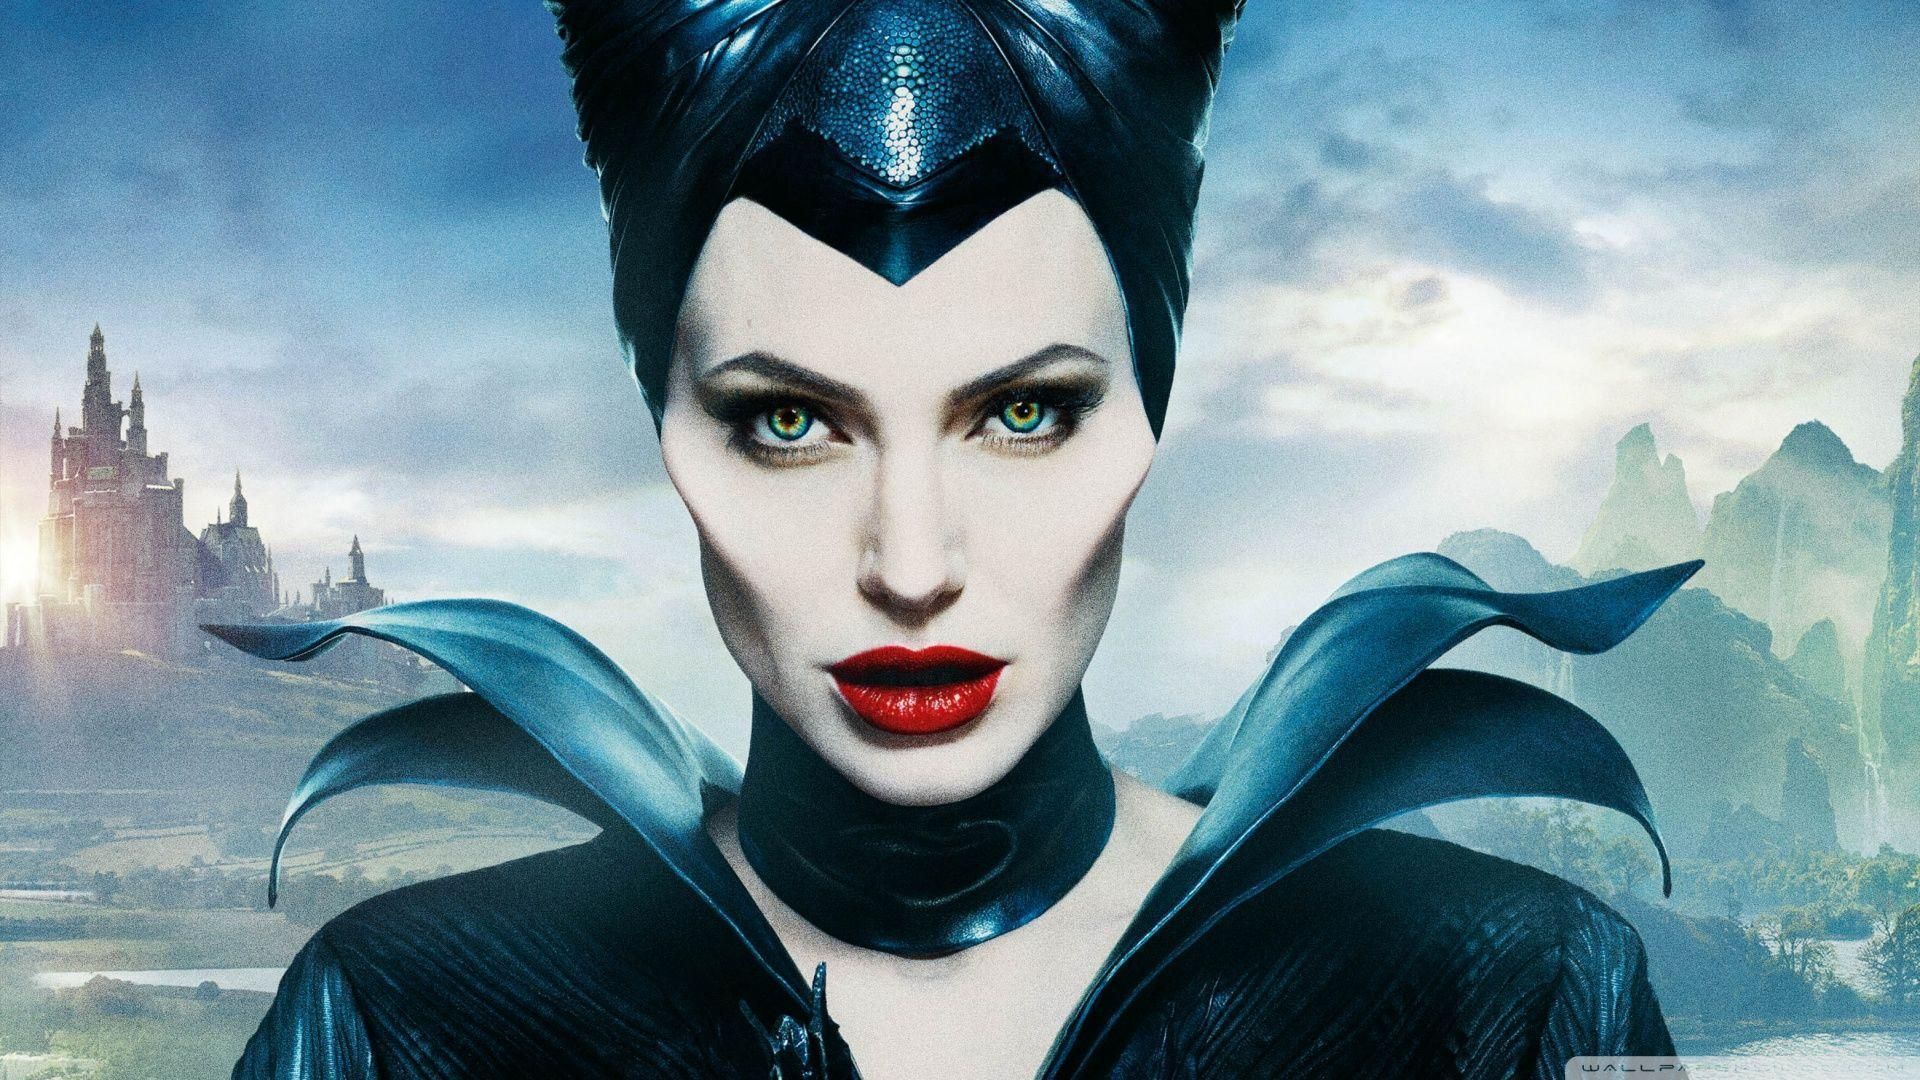 MALEFICENT HD desktop wallpapers : Widescreen : High Definition